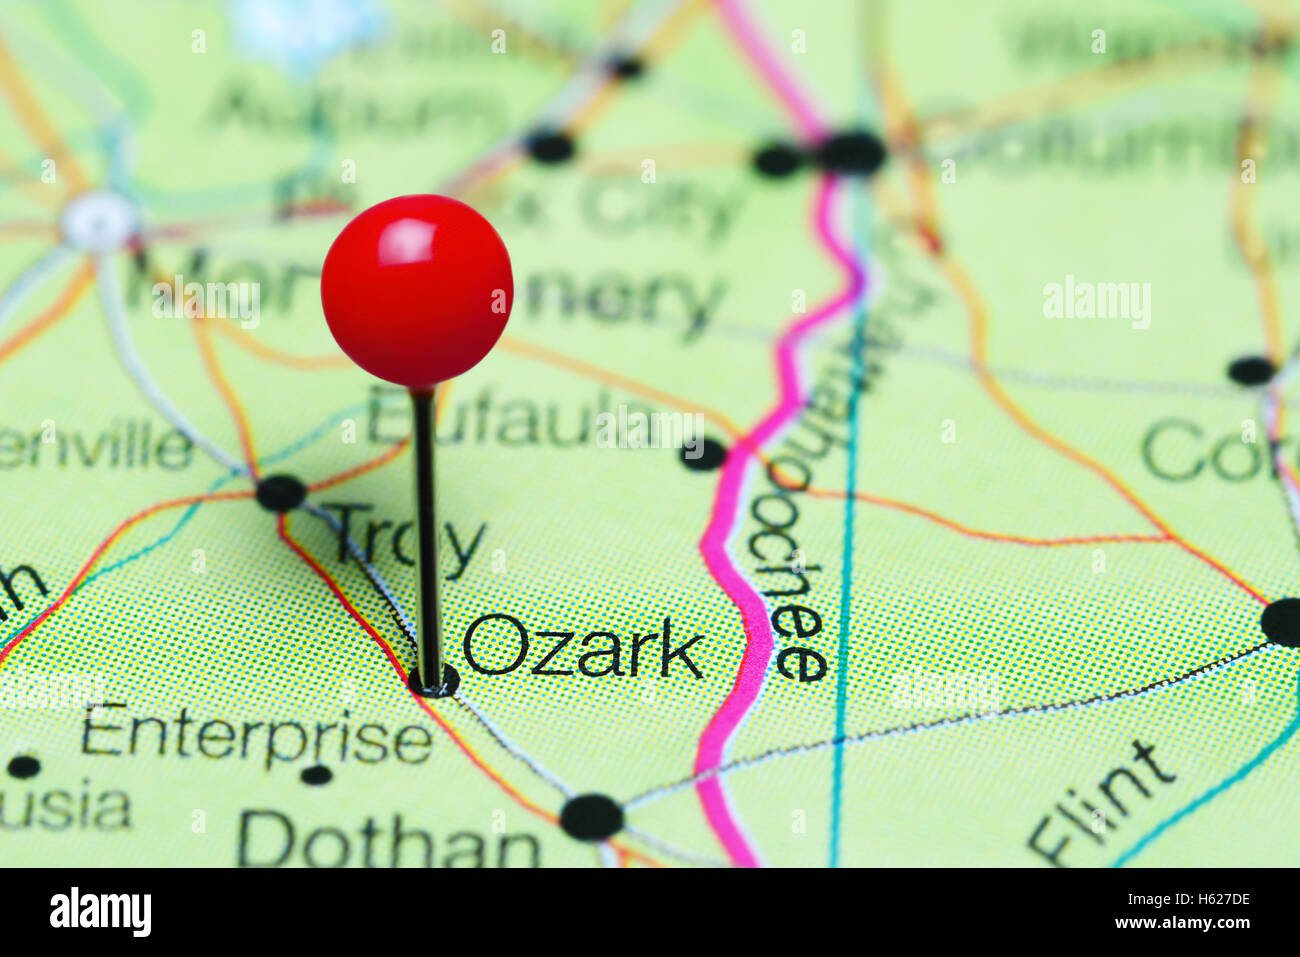 Ozark pinned on a map of Alabama, USA Stock Photo: 124210282 ... on map of nevada usa, map of georgia usa, map of st. vincent and the grenadines, map of america usa, map of san antonio usa, map of northeastern usa, map of northwestern usa, map of midwest states usa, map of southern usa, map of the south usa, map of carolinas usa, map delaware usa, map arkansas usa, map of washington dc usa, map of richmond usa, map of mexico usa, map of southeast usa, map of boston usa, colorado map usa, map of pacific northwest usa,